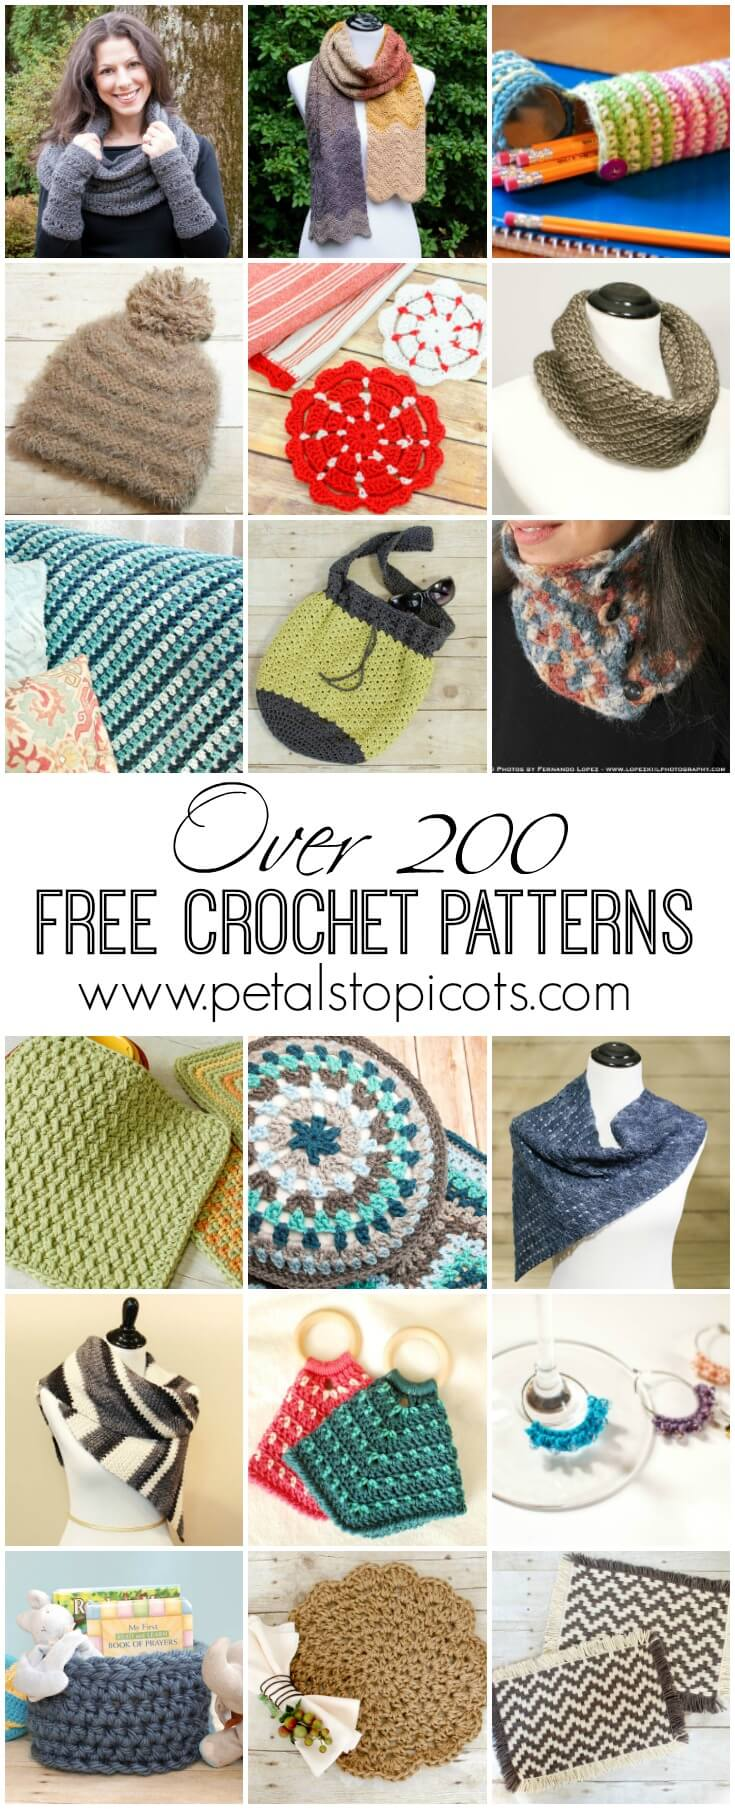 Find hundreds of free crochet patterns on Petals to Picots ... crochet for the home, wearable crochet and accessories, crochet for baby, and so much more! #petalstopicots